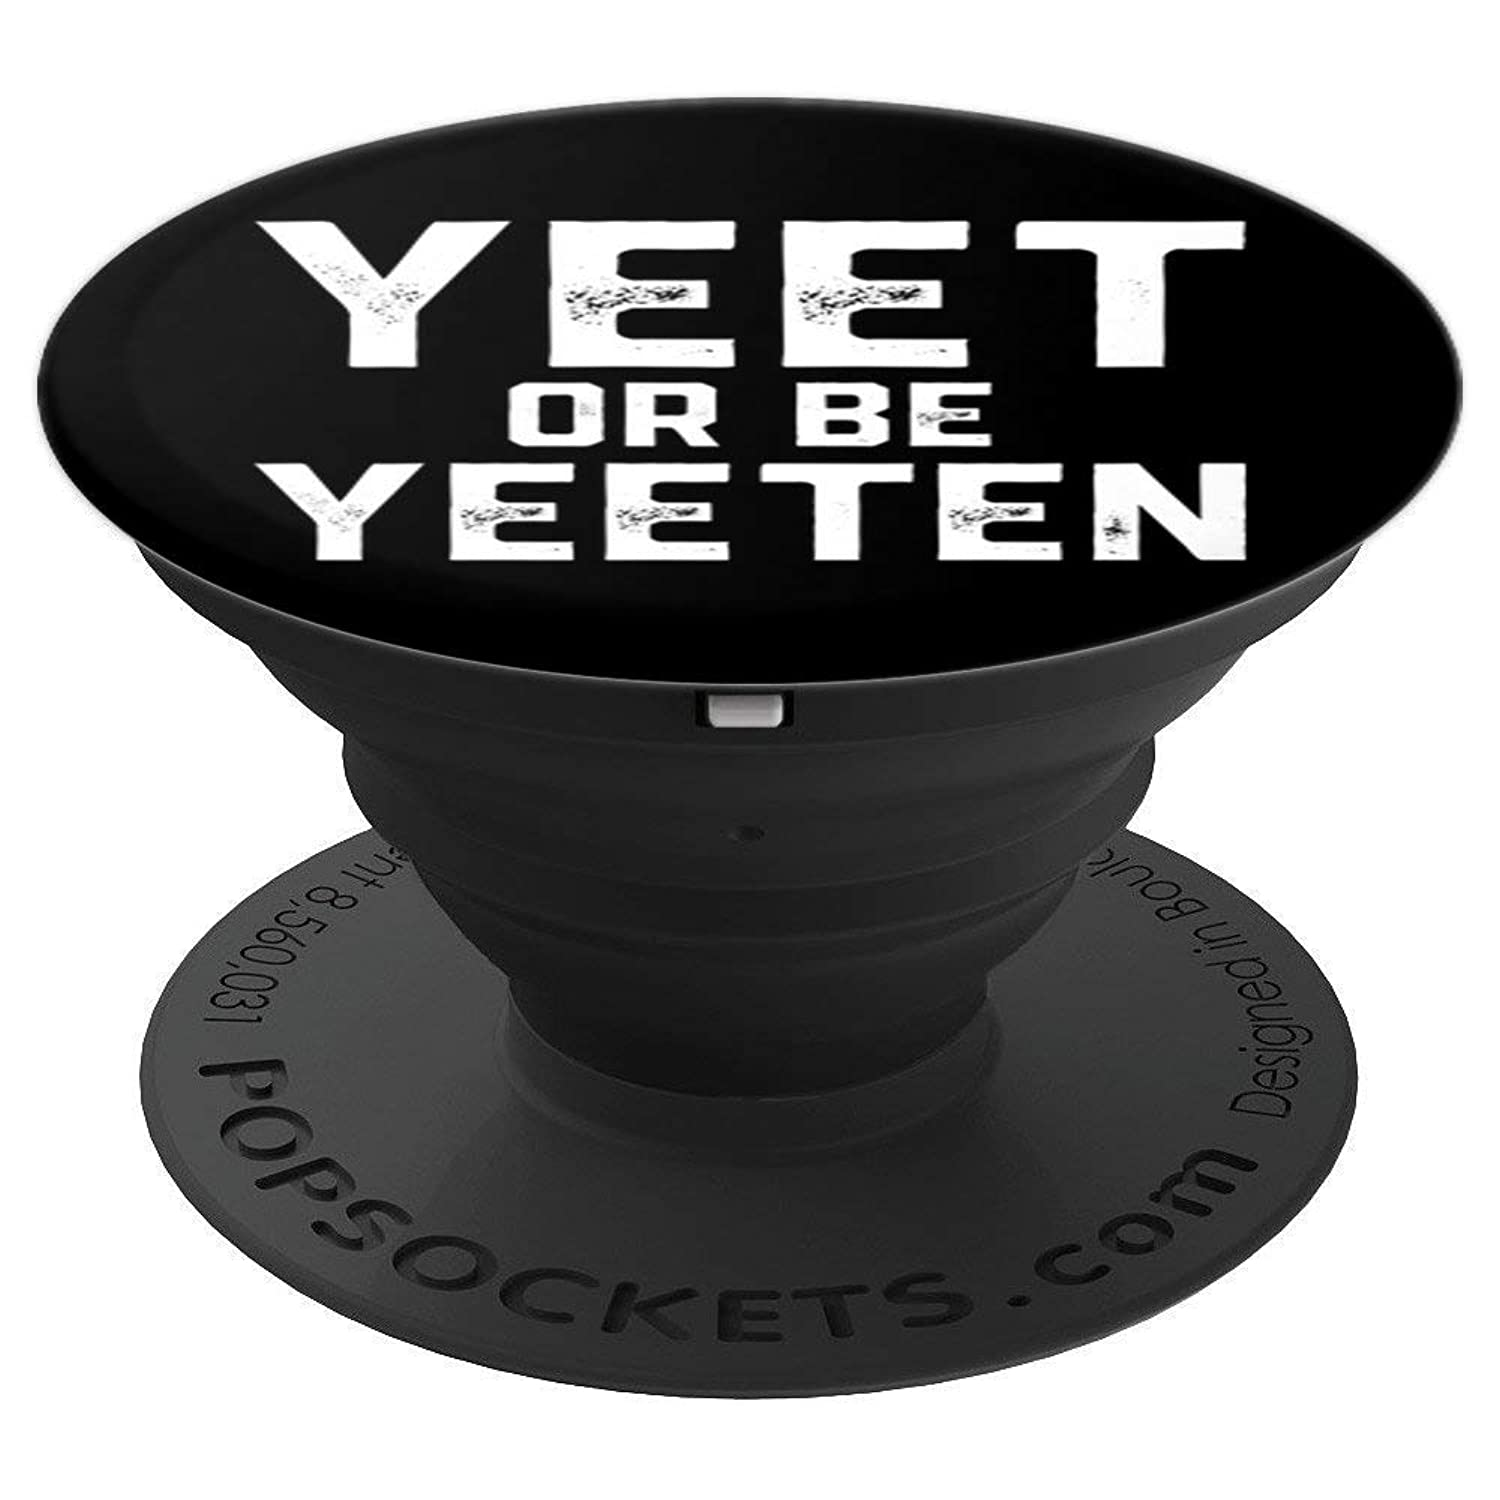 Yeet Or Be Yeeten - Dank Meme Yeet Charm Phone Decoration - PopSockets Grip and Stand for Phones and Tablets